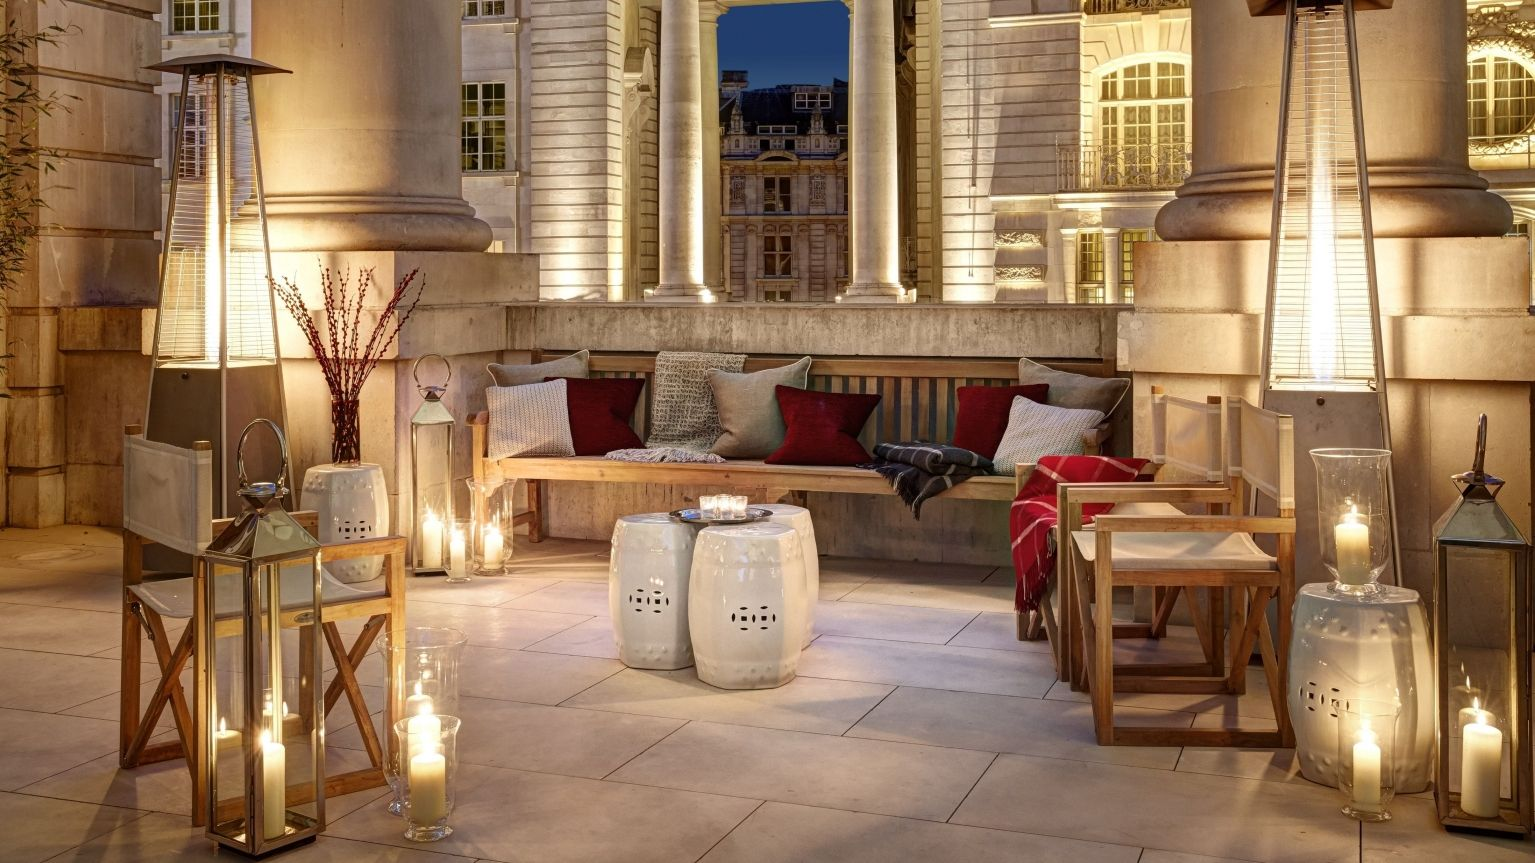 pompadour ballroom terrace hotel cafe royal london